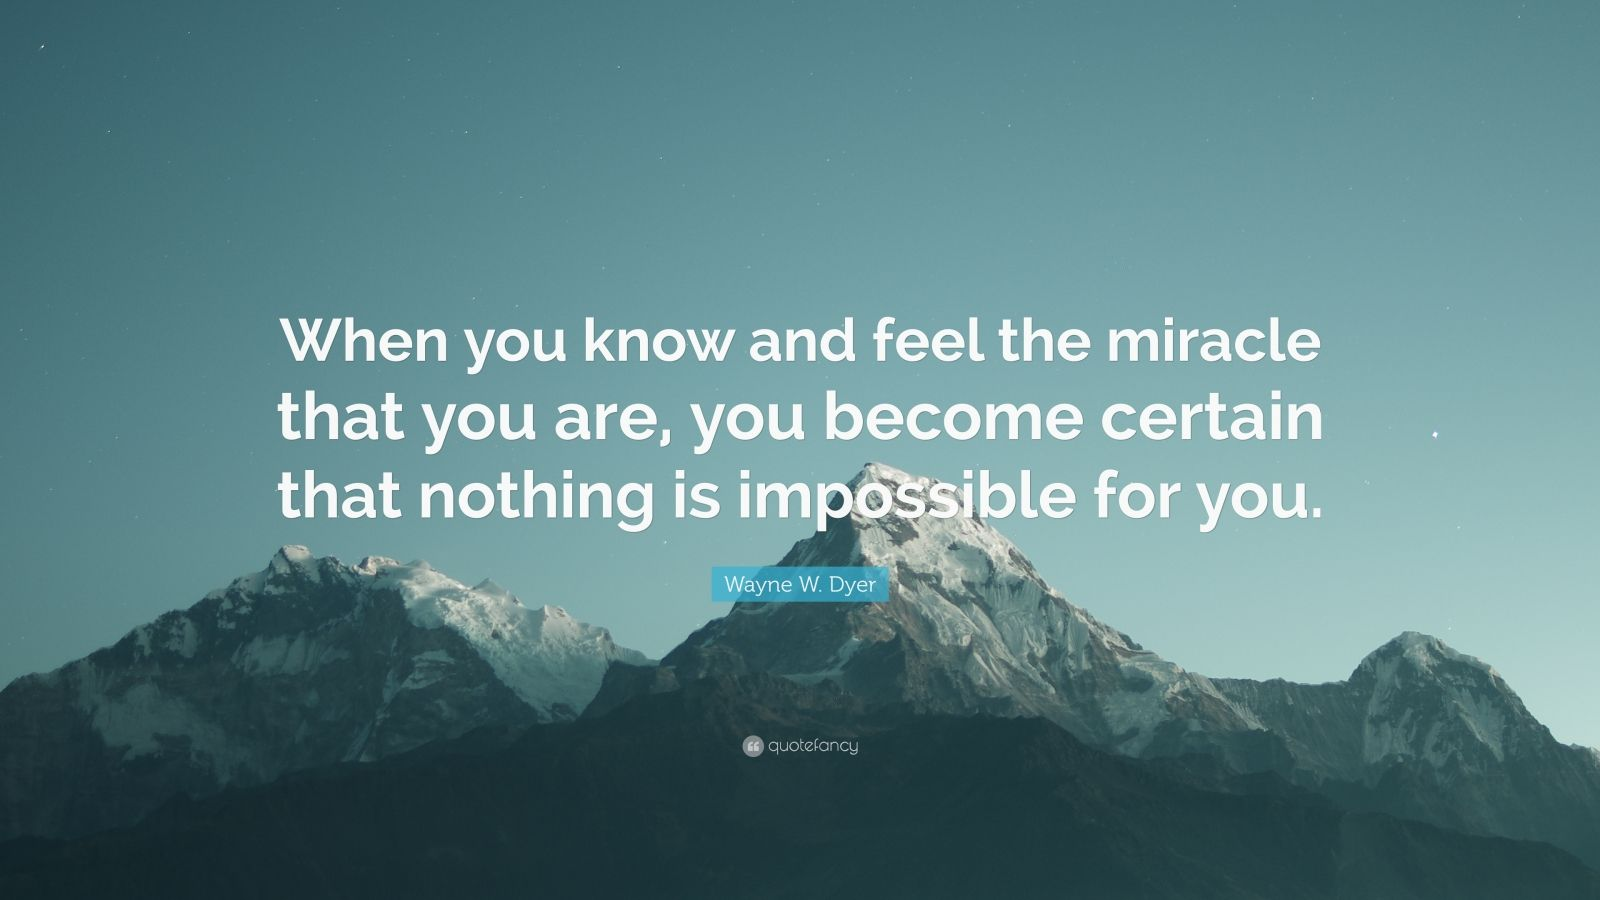 """Wayne W. Dyer Quote: """"When you know and feel the miracle that you are, you become certain that nothing is impossible for you."""""""